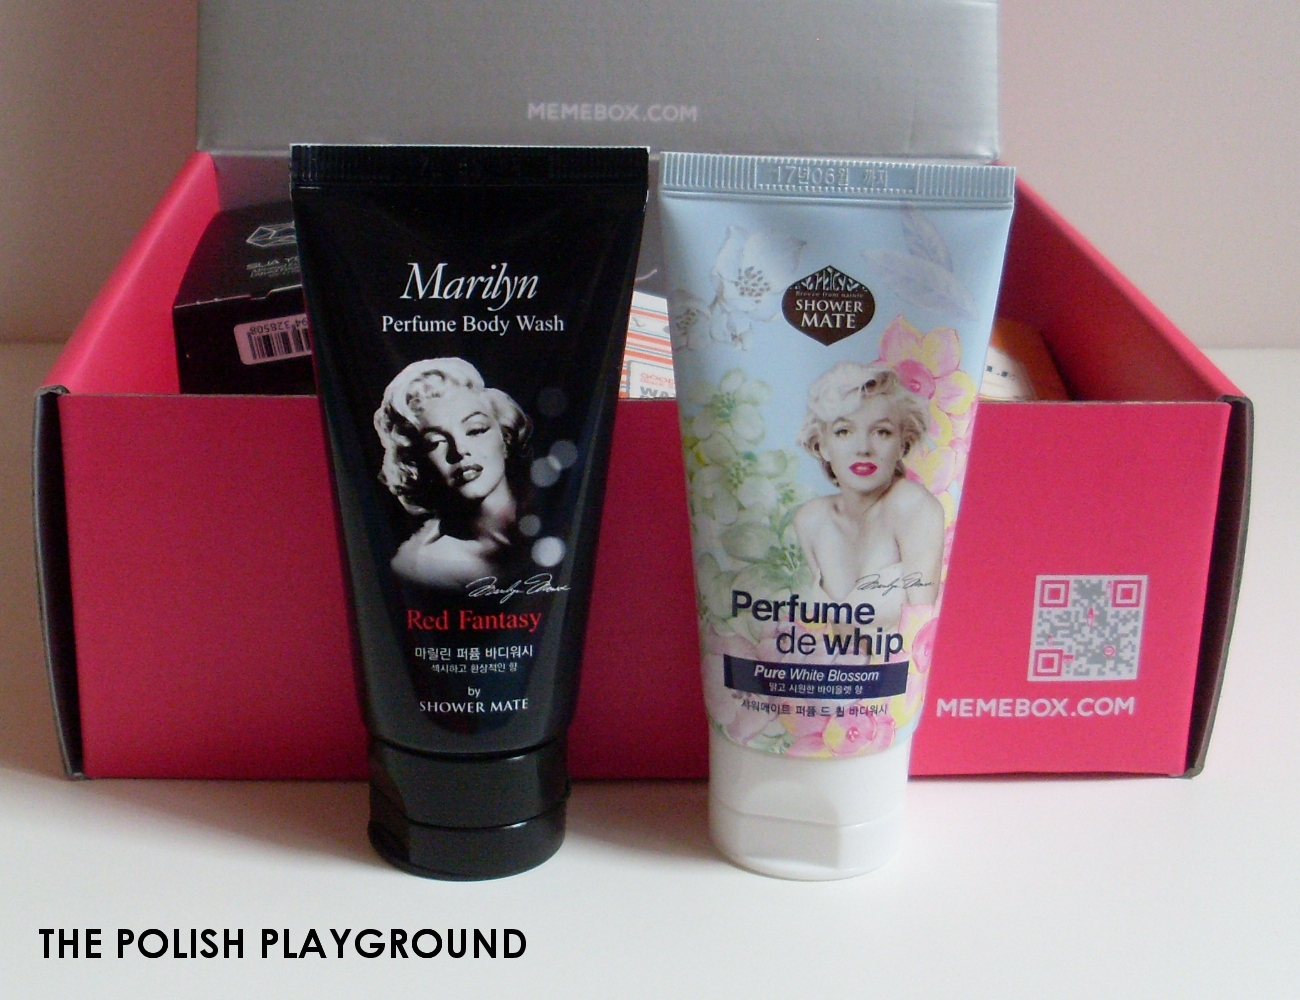 Memebox Global #14 Unboxing - Shower Mate Perfume de Whip Body Wash in 01 Romantic Pink Garden and 03 Marilyn Red Fantasy